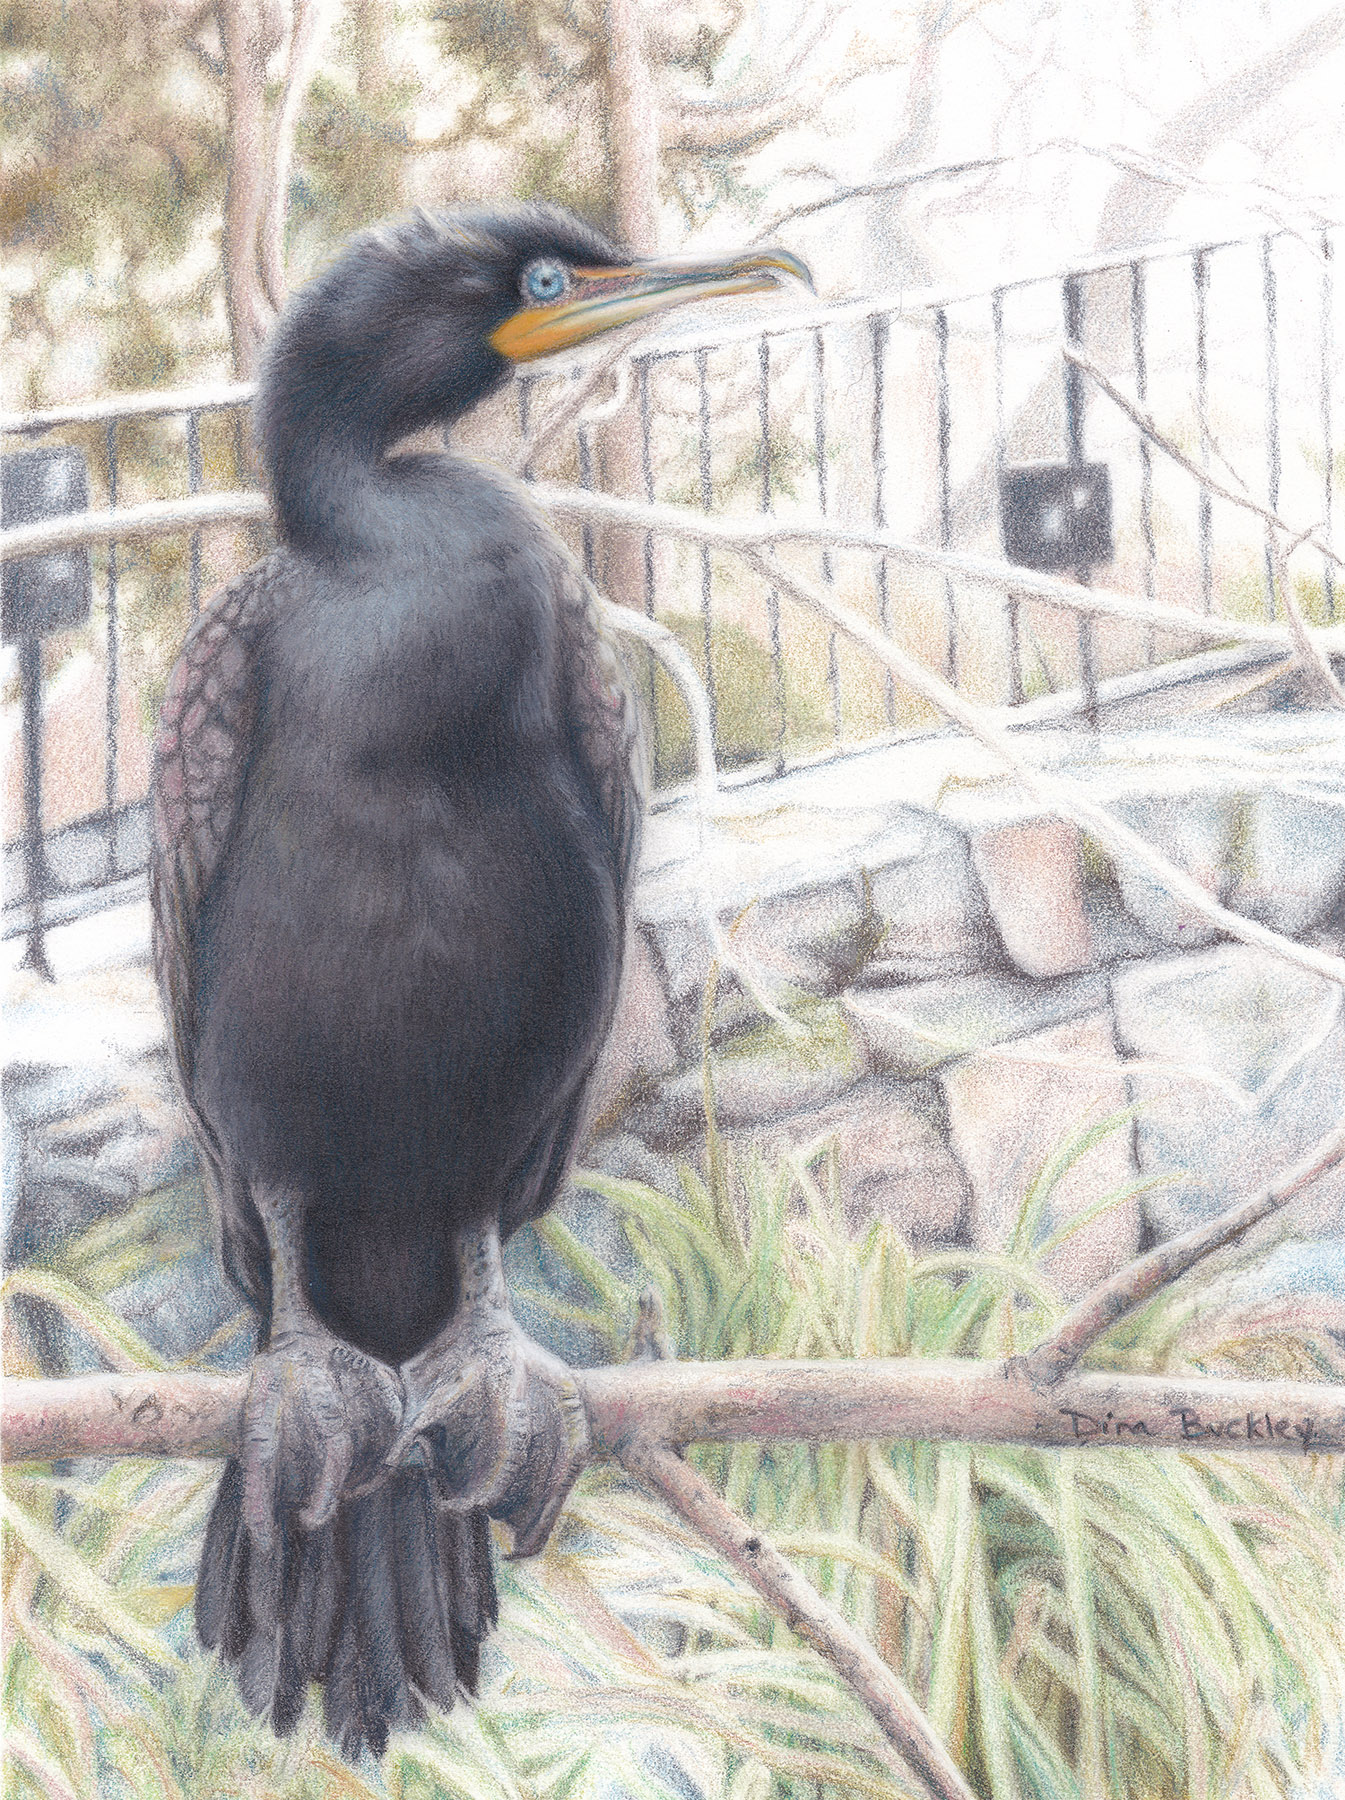 D.Buckley Double-Crested Cormorant